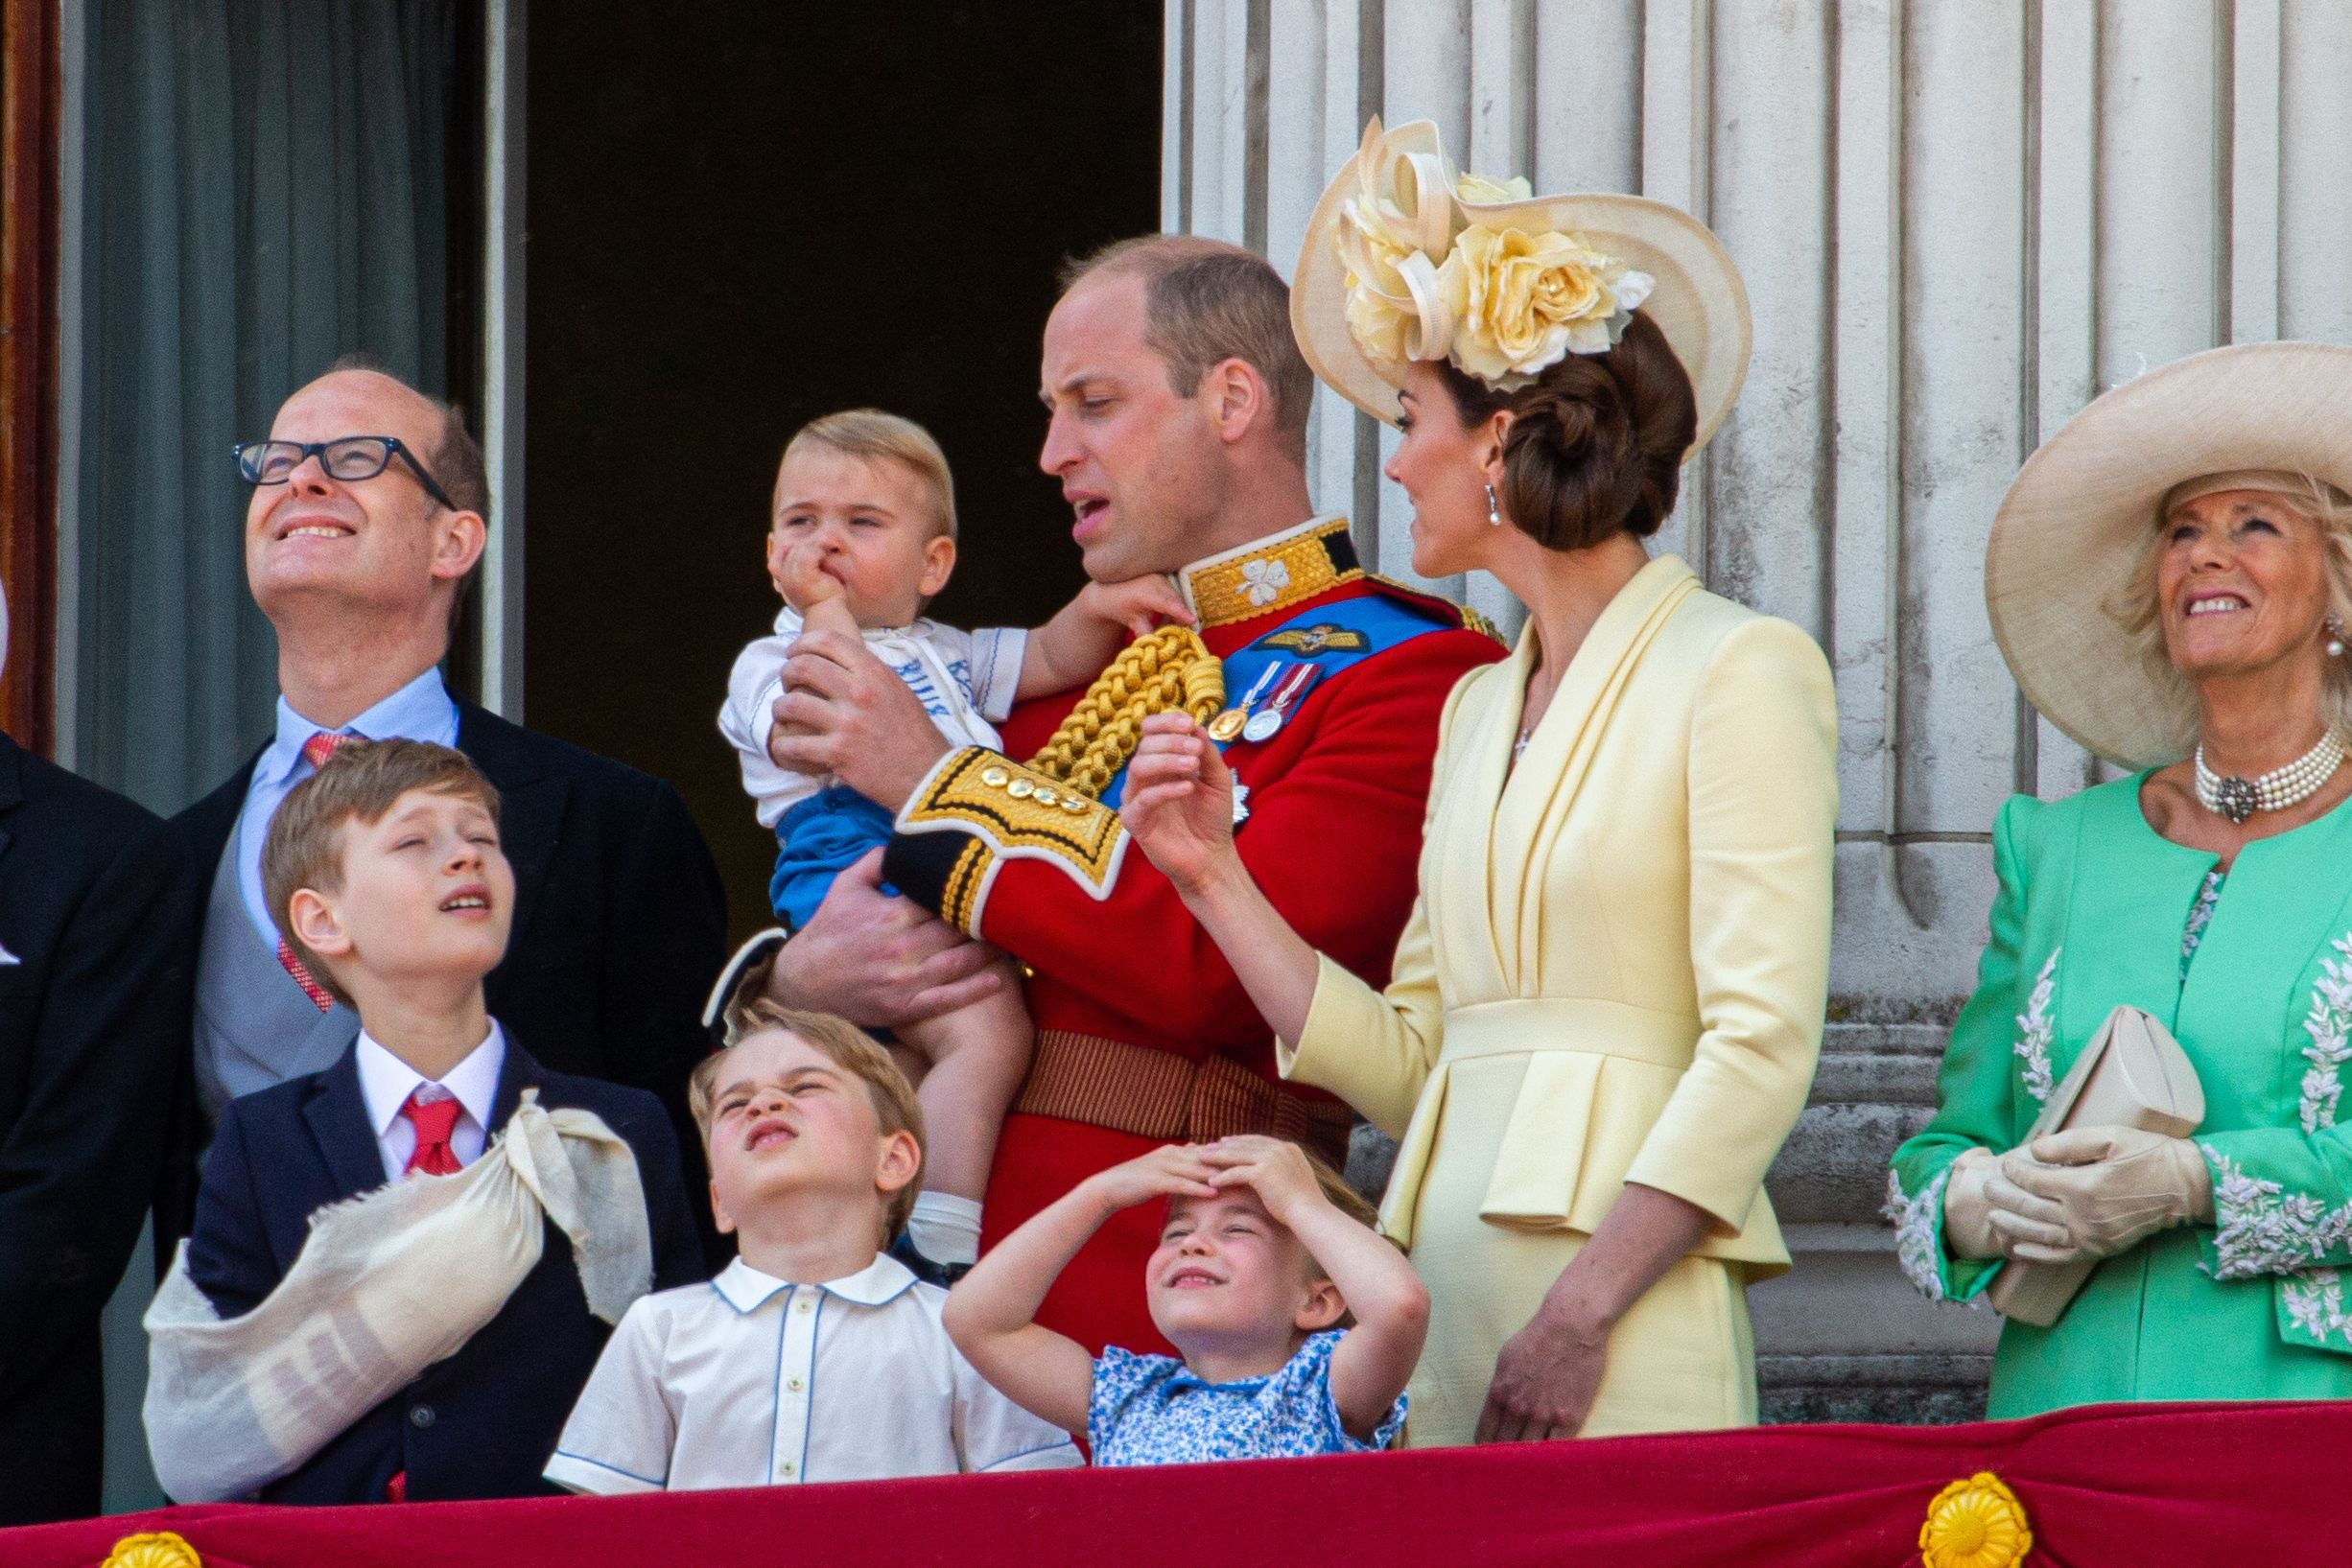 lbert Windsor, Prince William, Catherine Duchess of Cambridge, Prince Louis, Prince George and Princess Charlotte